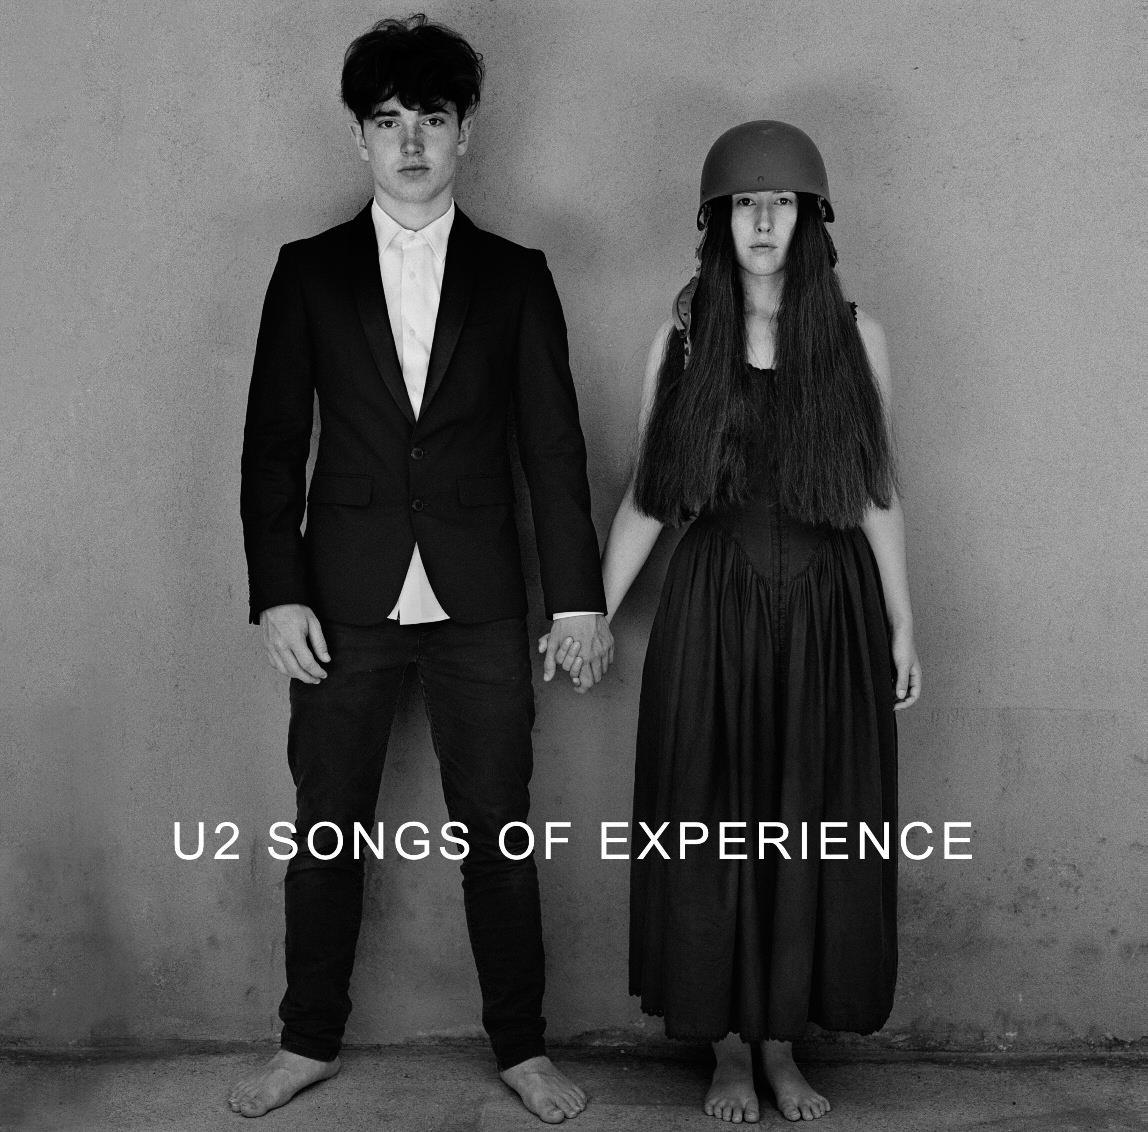 U2 - SONGS OF EXPERIENCE - BRAND NEW ALBUM  U2 - CD -